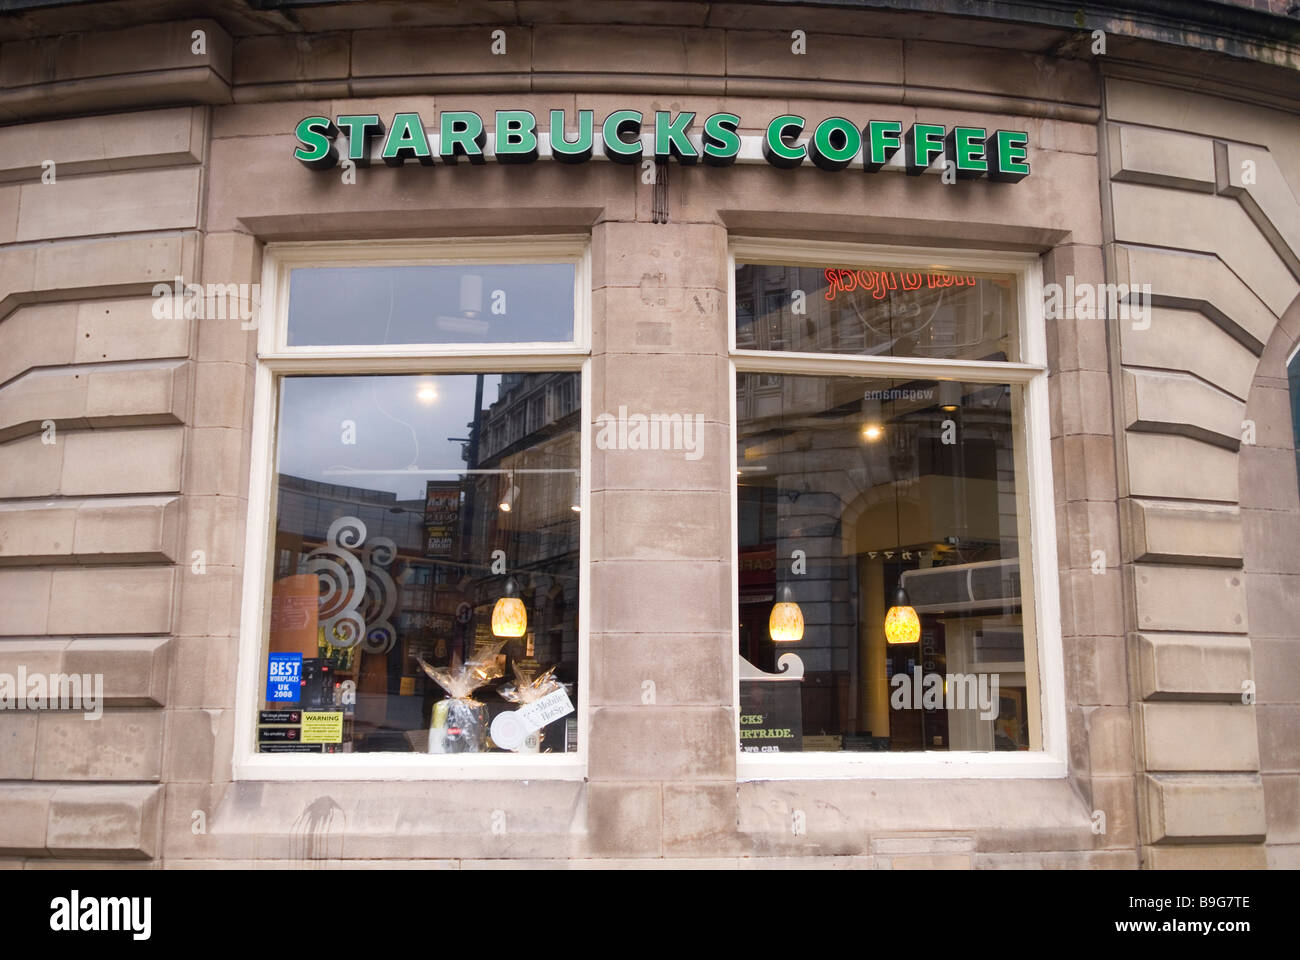 Starbucks Coffee in Manchester city centre UK - Stock Image